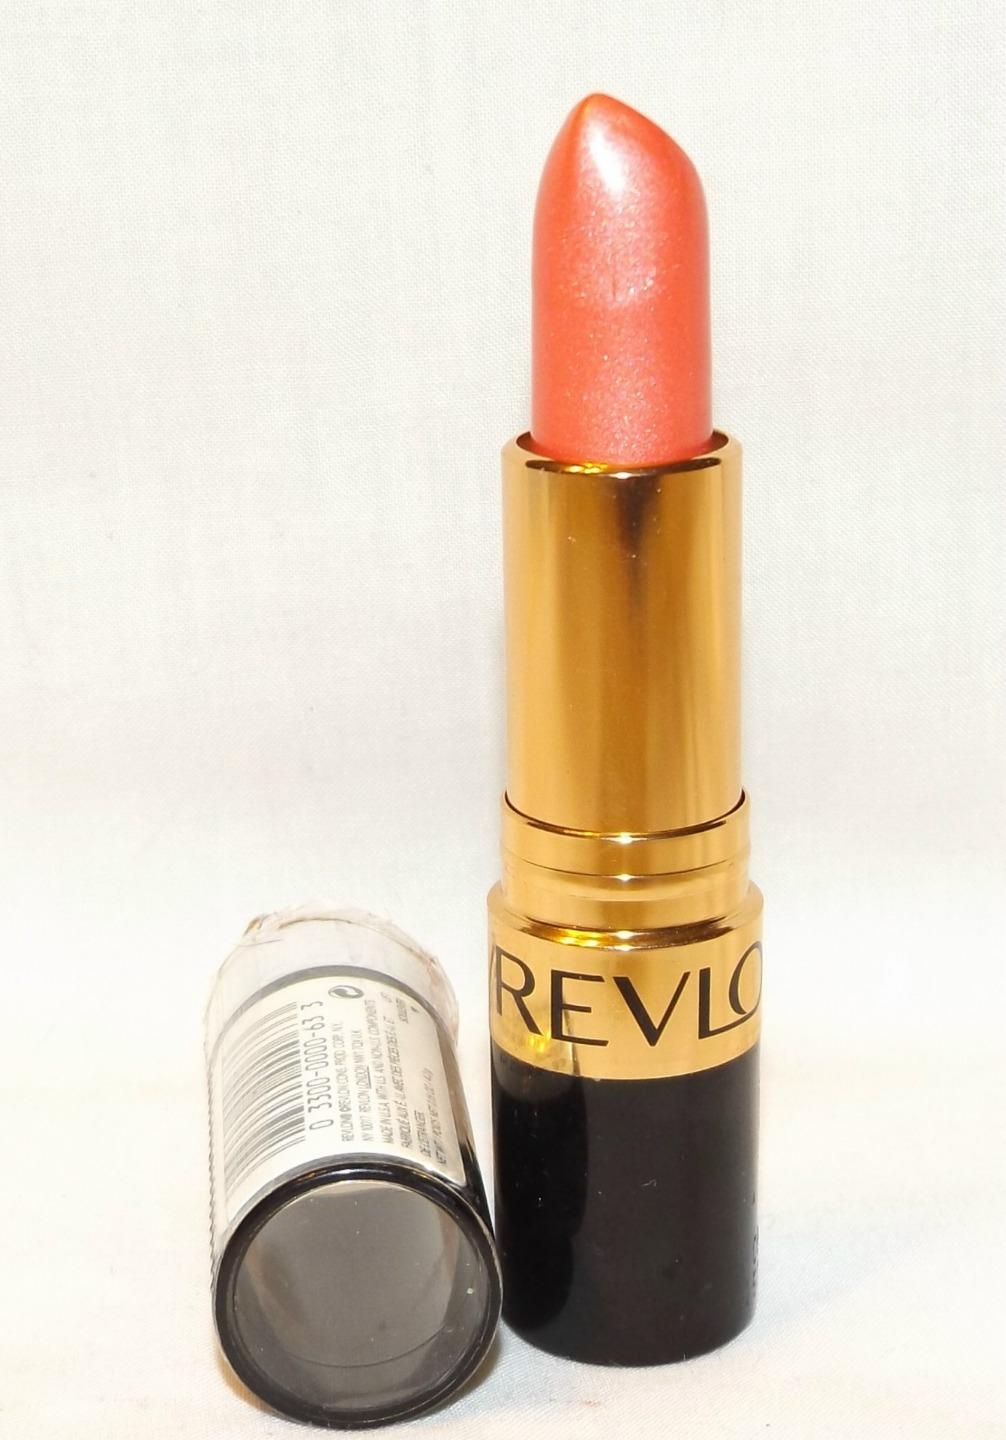 The Revlon rule is the legal principle that a board of directors make a reasonable effort to obtain the highest value for a company in a hostile takeover.